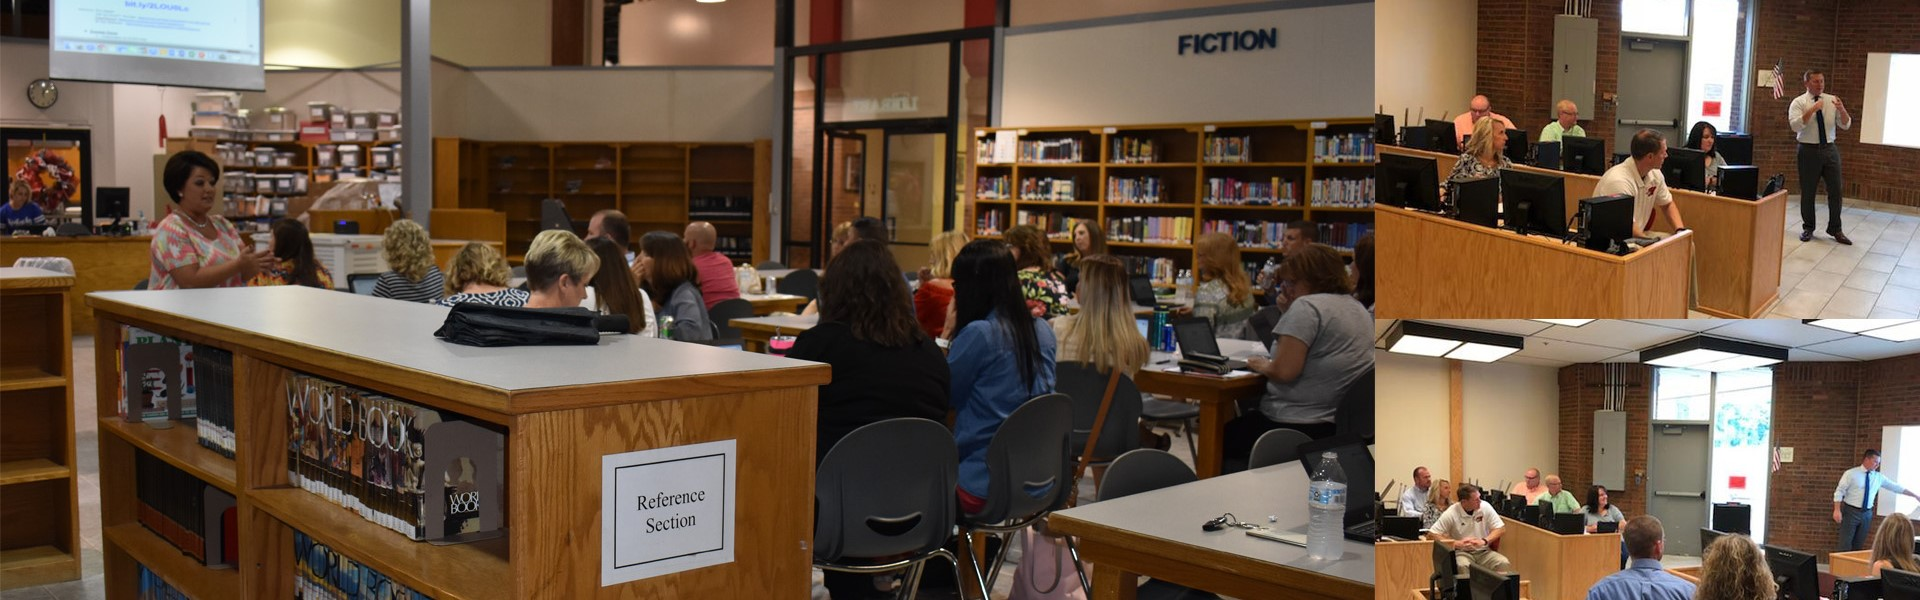 Whitley County Staff Receive Digital Training